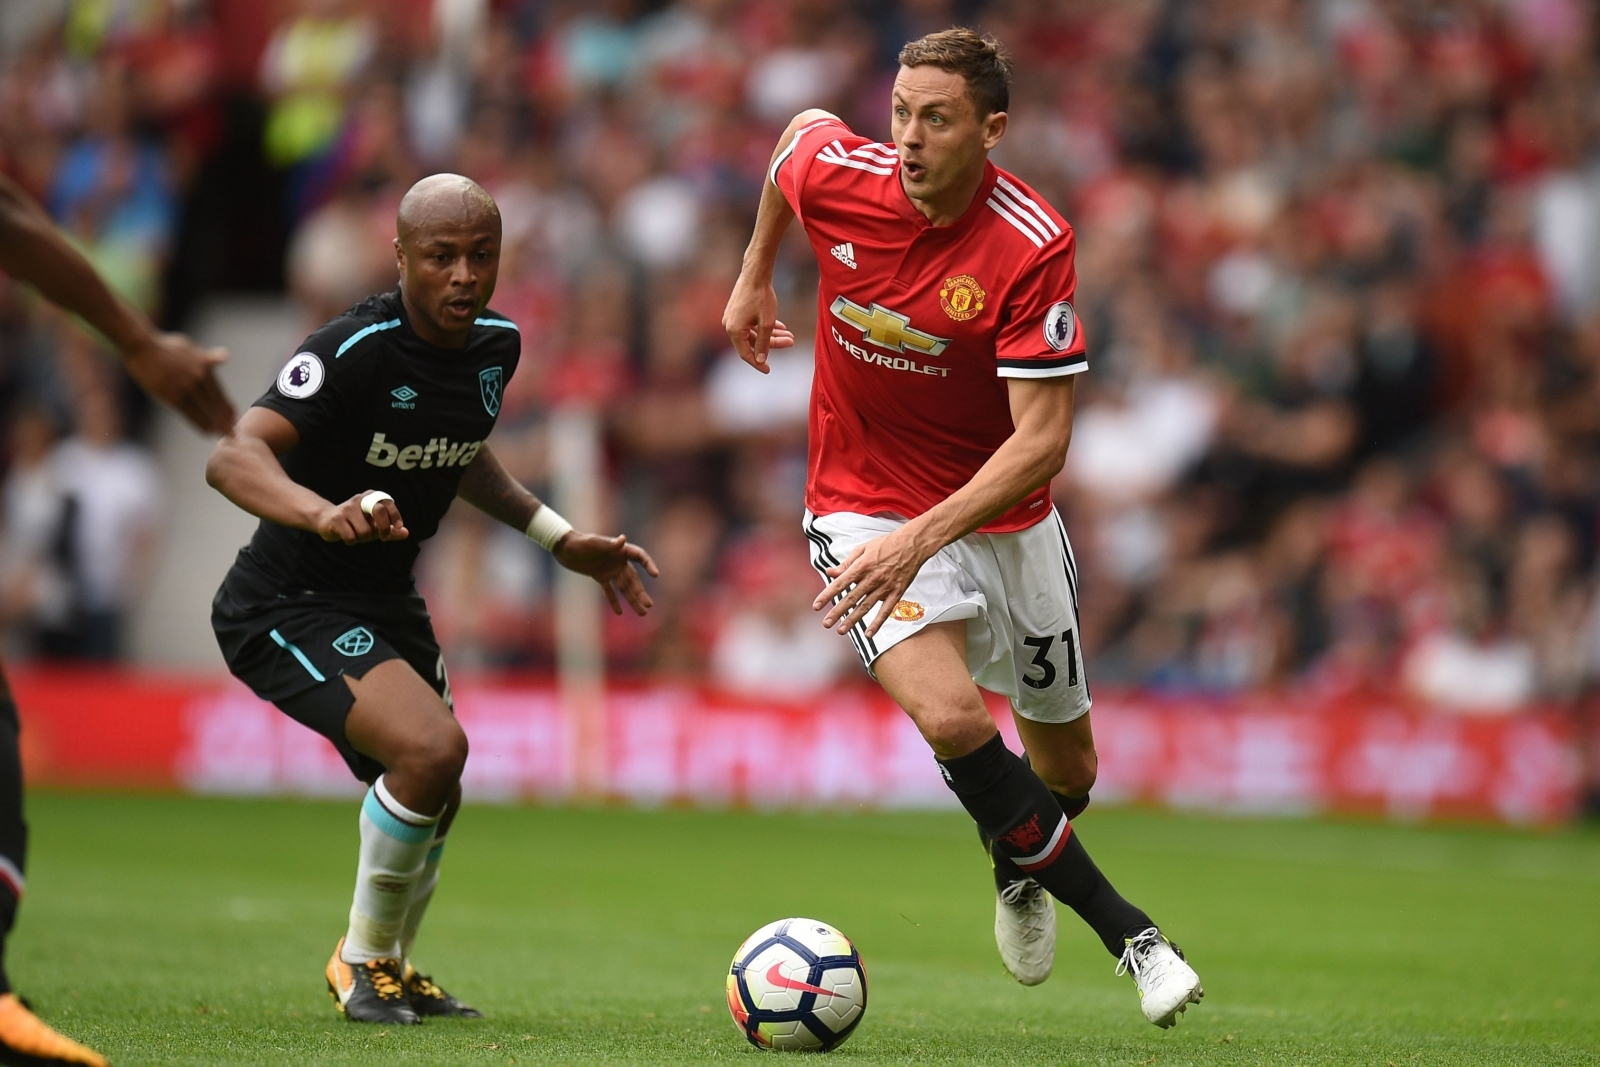 Chelsea have a big hole in midfield without Manchester United's Nemanja Matic says Graeme Le Saux